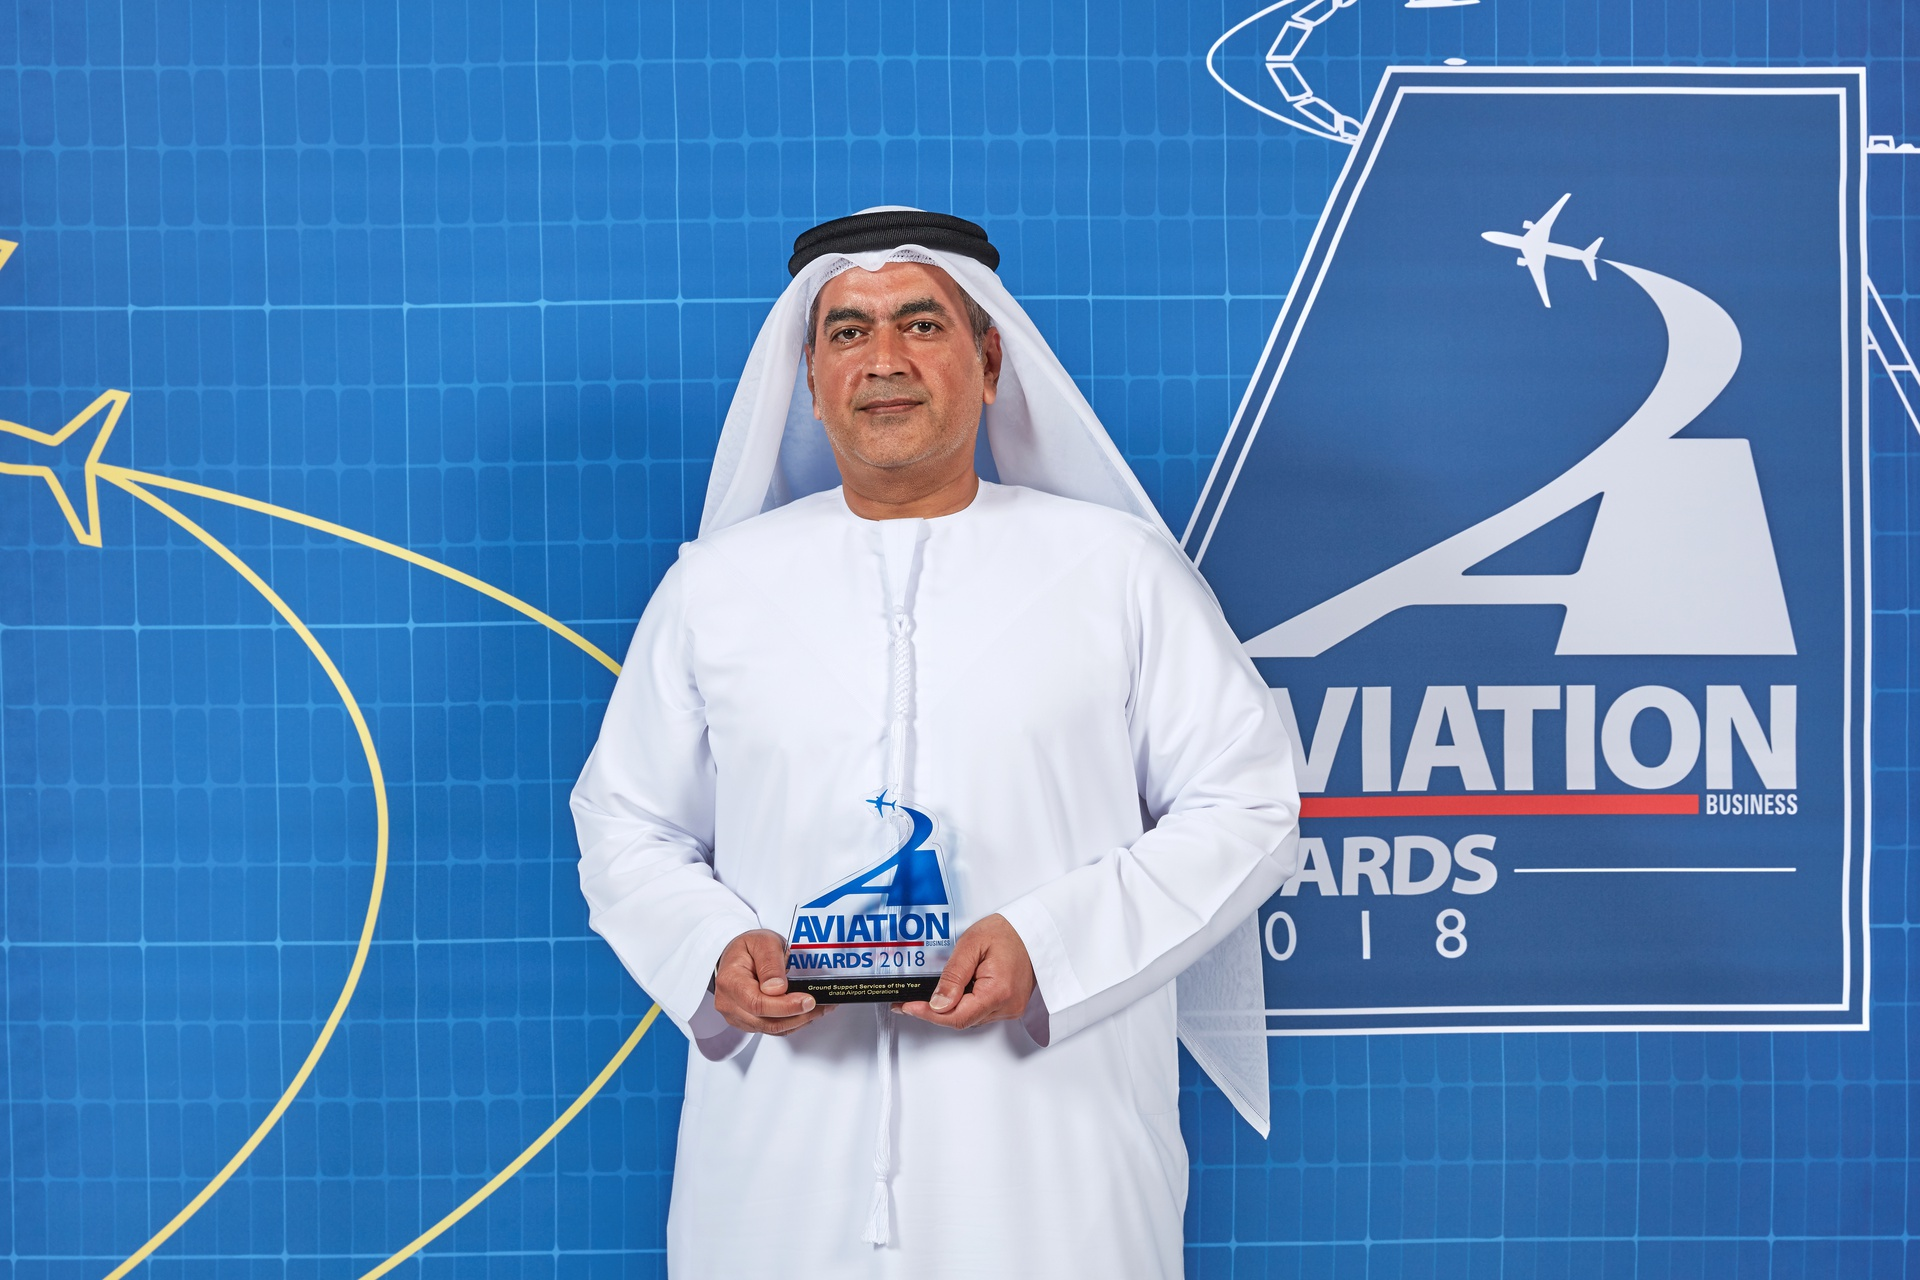 Jaffar Dawood, Senior Vice President, UAE Airport Operations, dnata, with the Ground Support Services Provider of the Year award